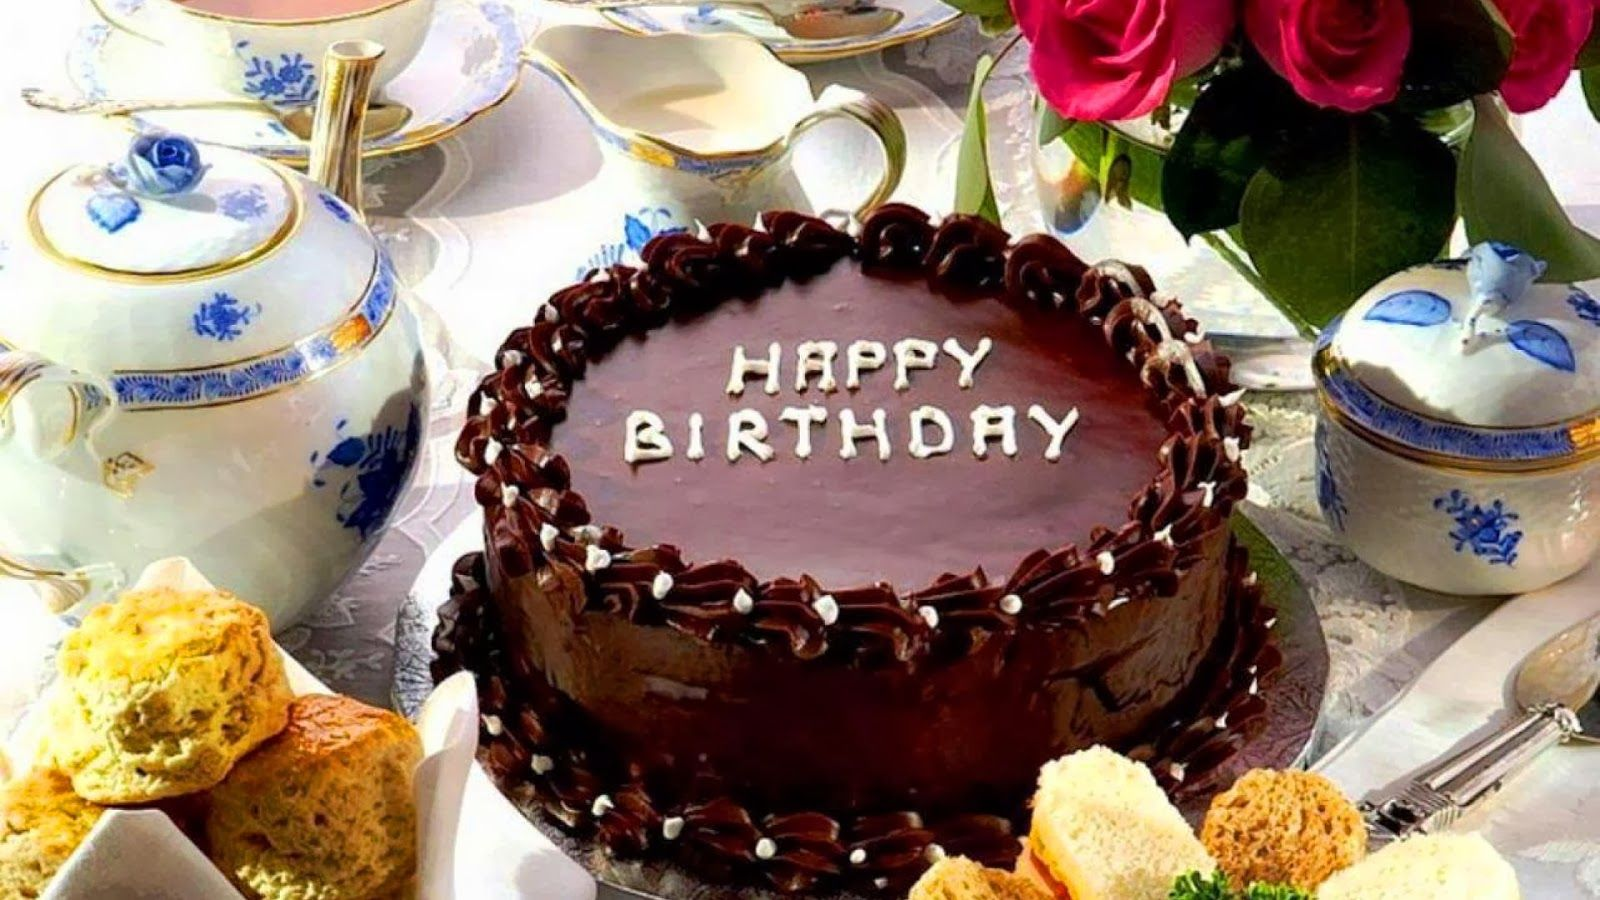 happy birthday cake pictures celebration wallpapers hd | névnapi